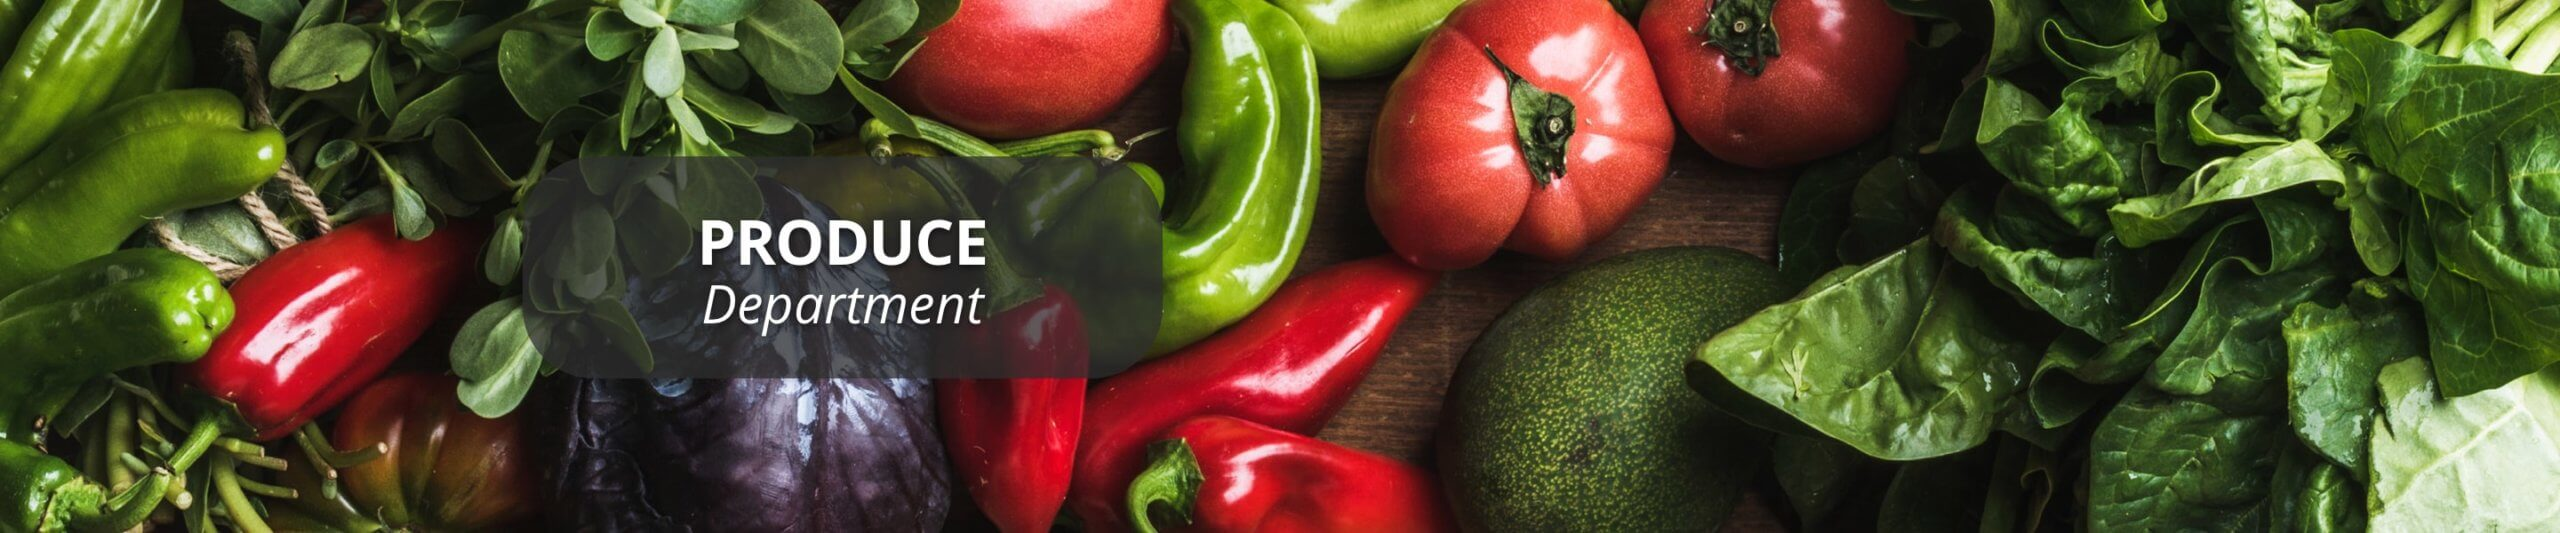 Assortment of peppers, tomatos, avocados and spinach.